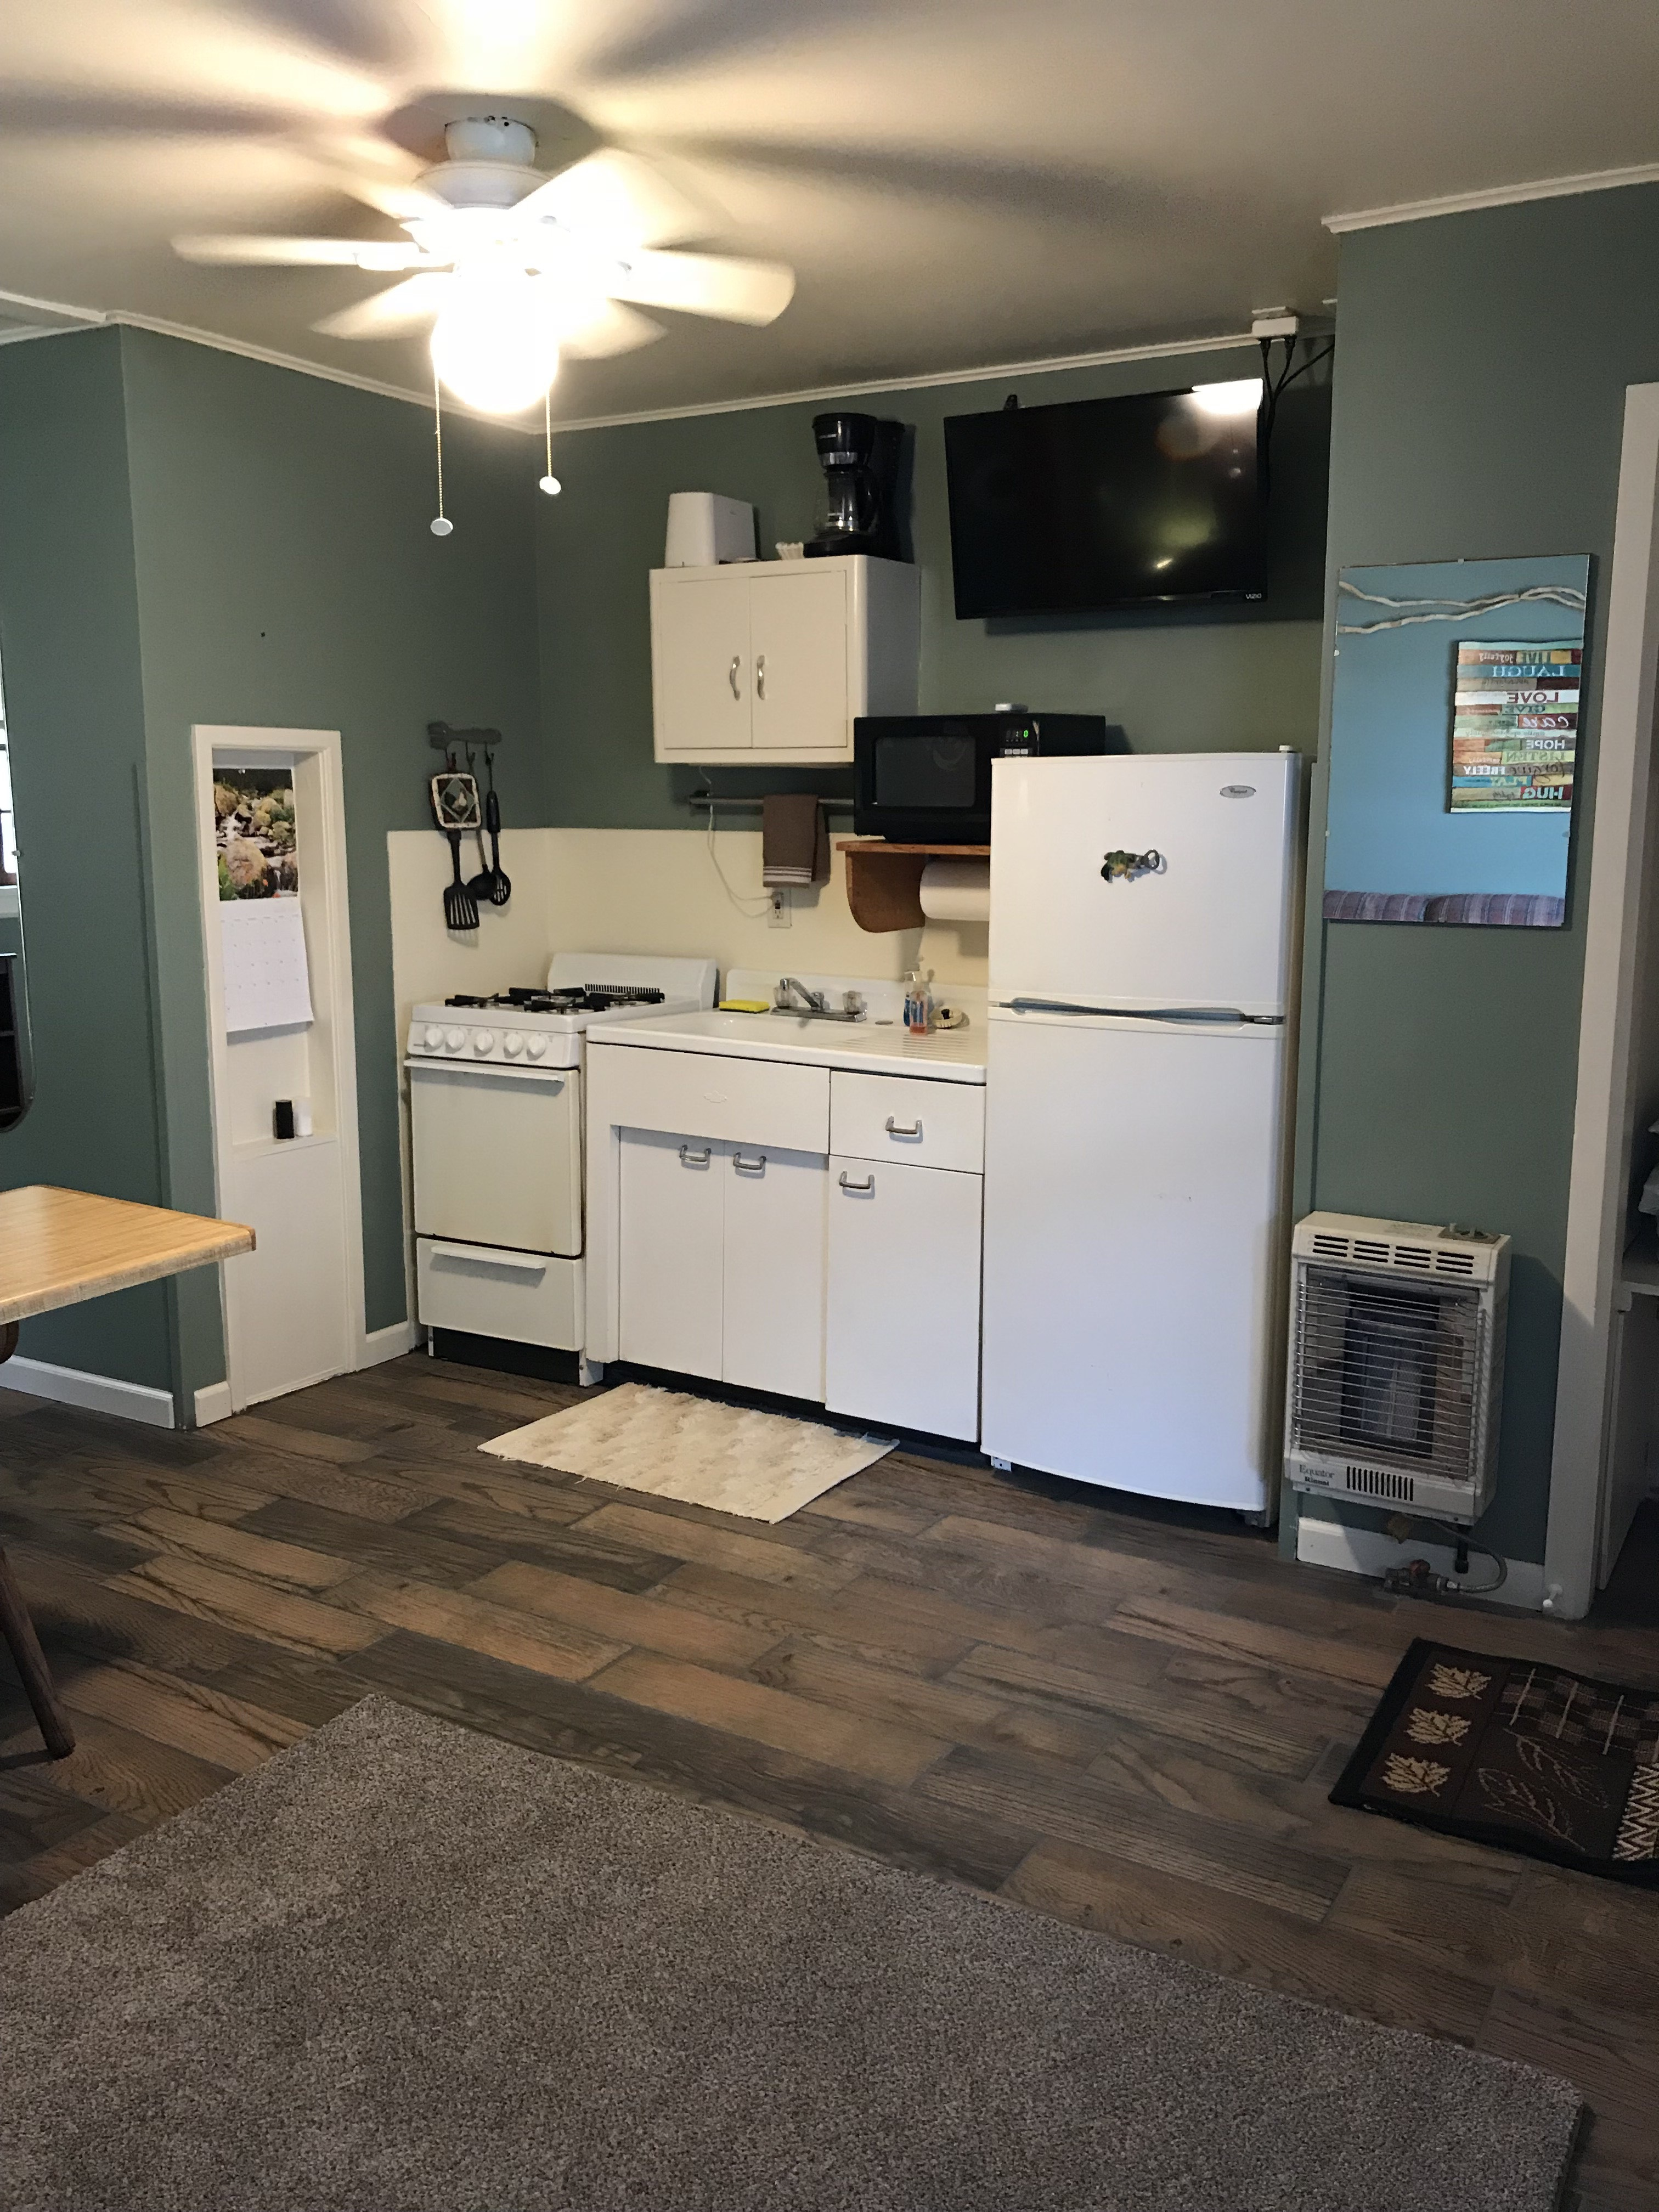 CABIN 3 KITCHENETTE